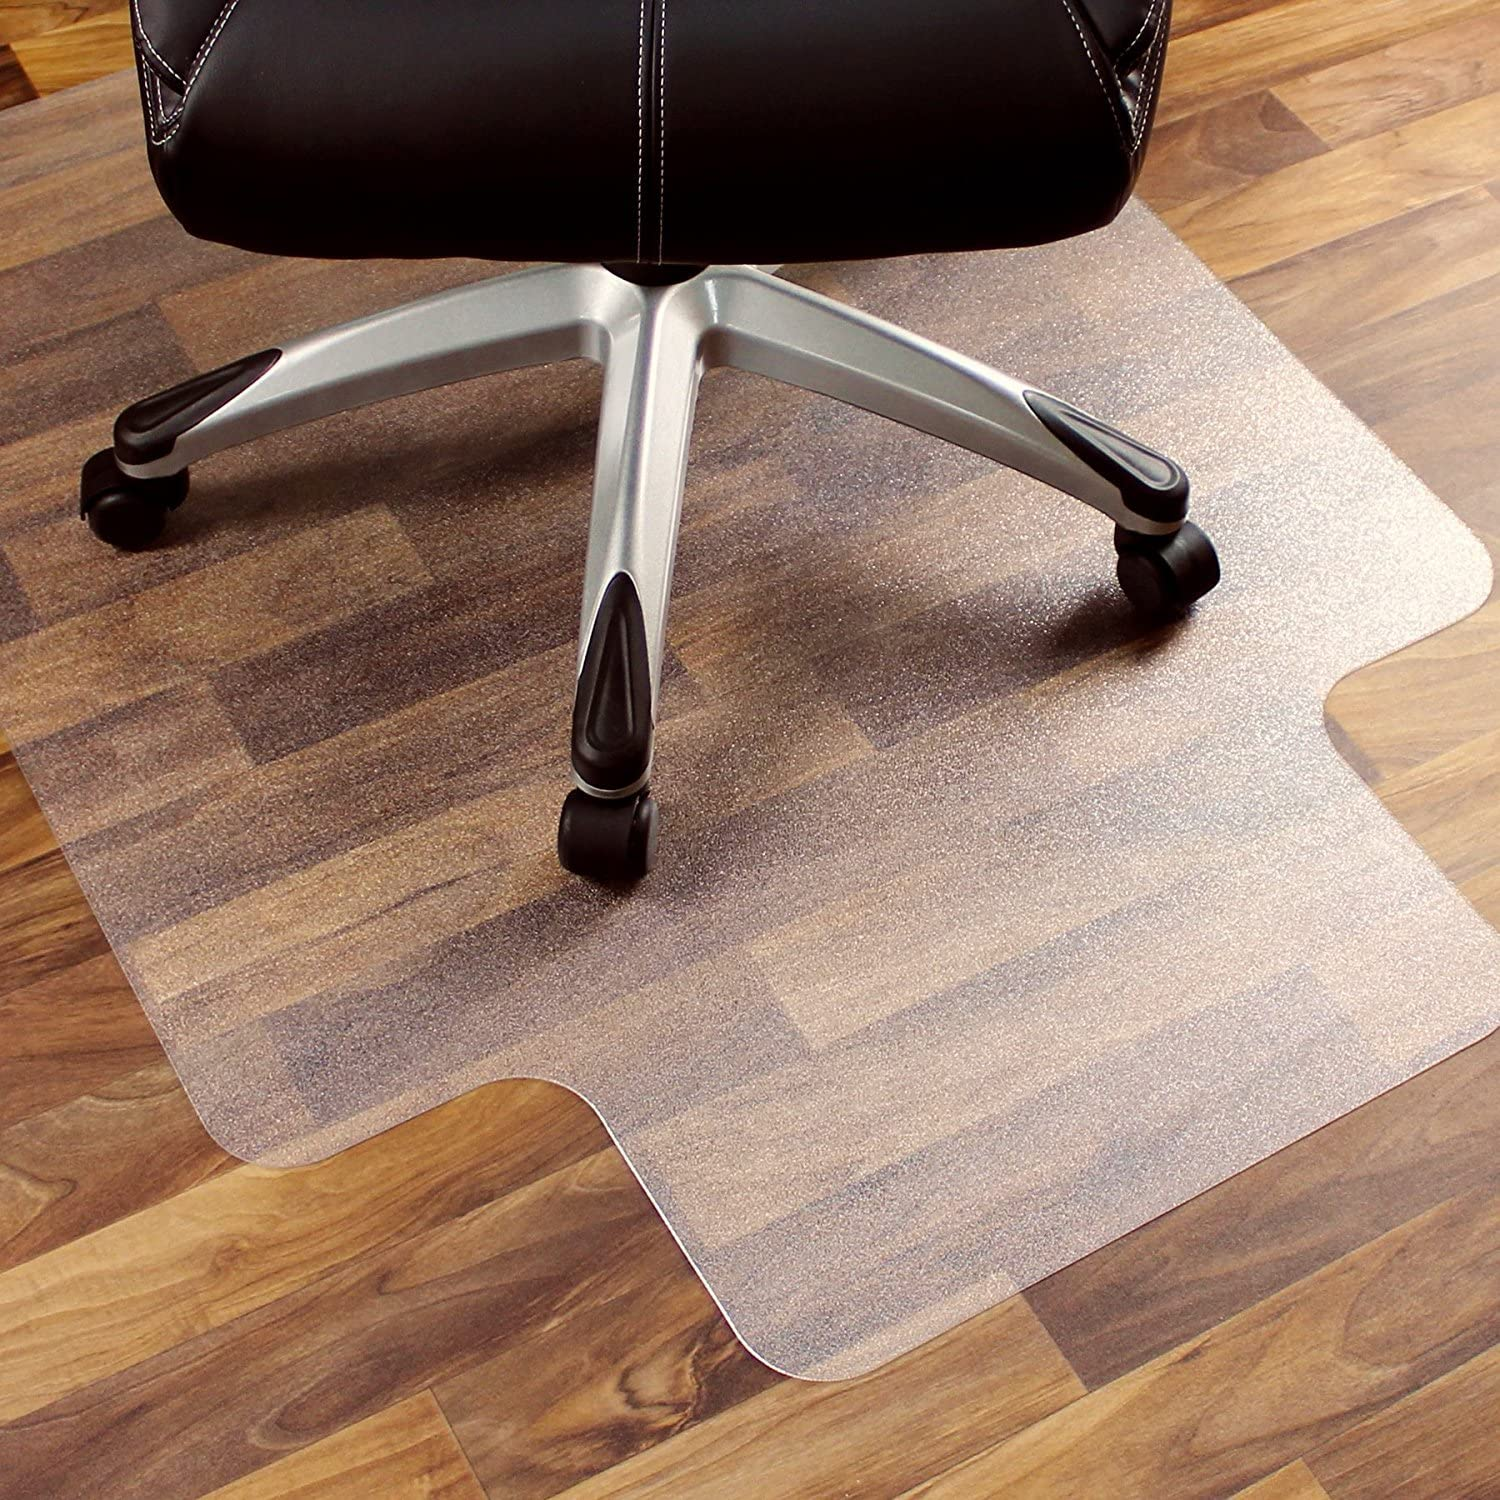 VALLEY TREE Non Slip Floor Mats for Office, 1.5mm Clear Thickness Chair Mat for Hardwood Floor, Office Chair Hard Wood Floor Protector Frosted, 48×60